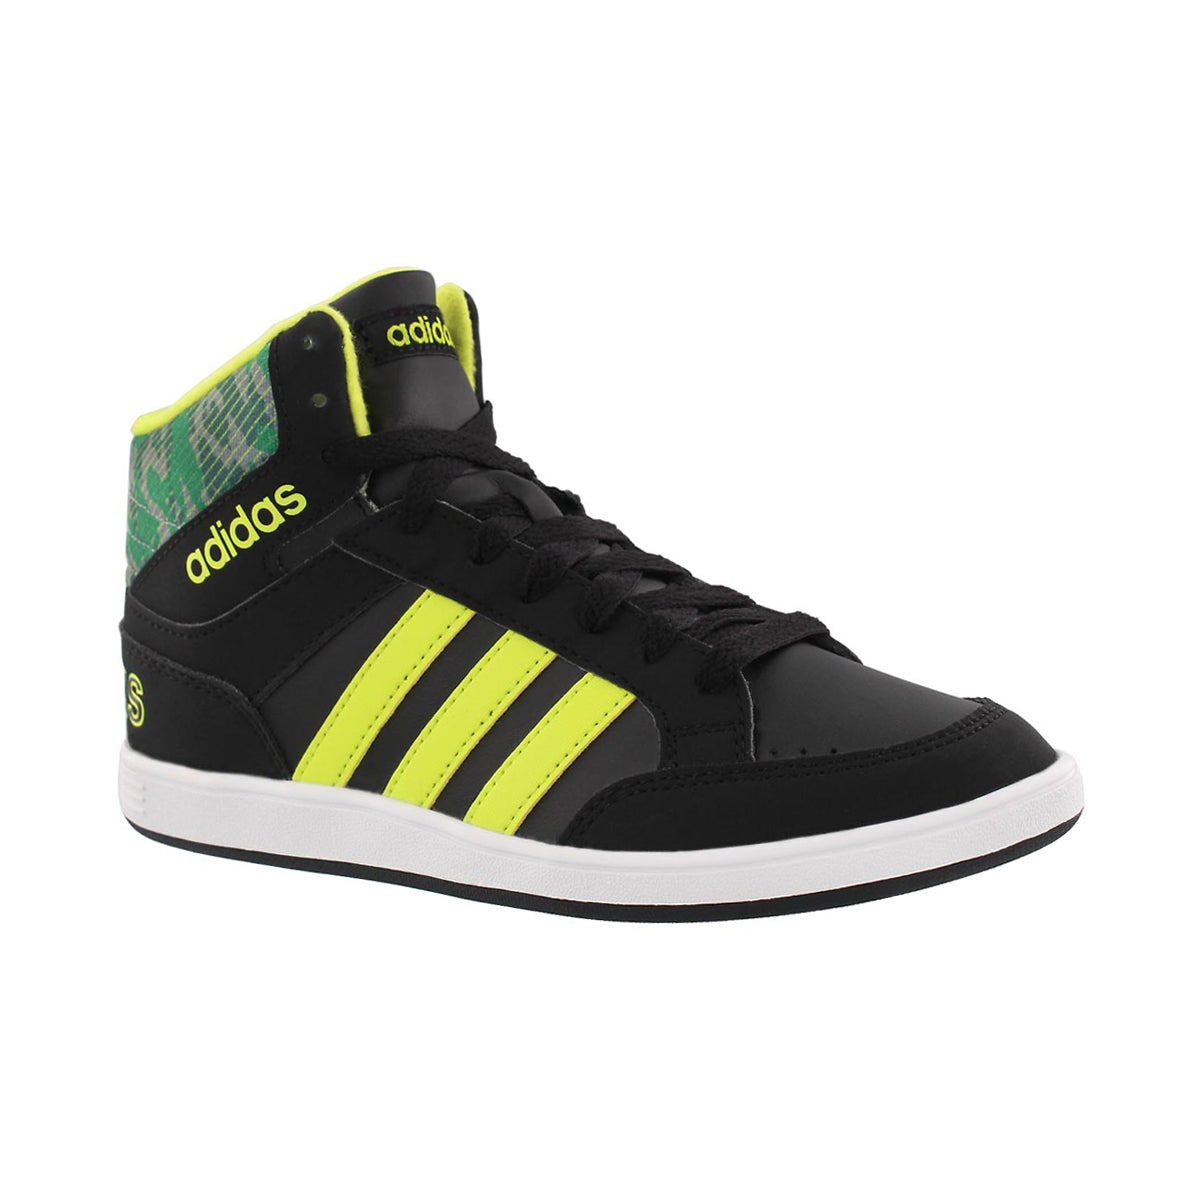 Boys' HOOPS mid black/yellow lace up sneaker